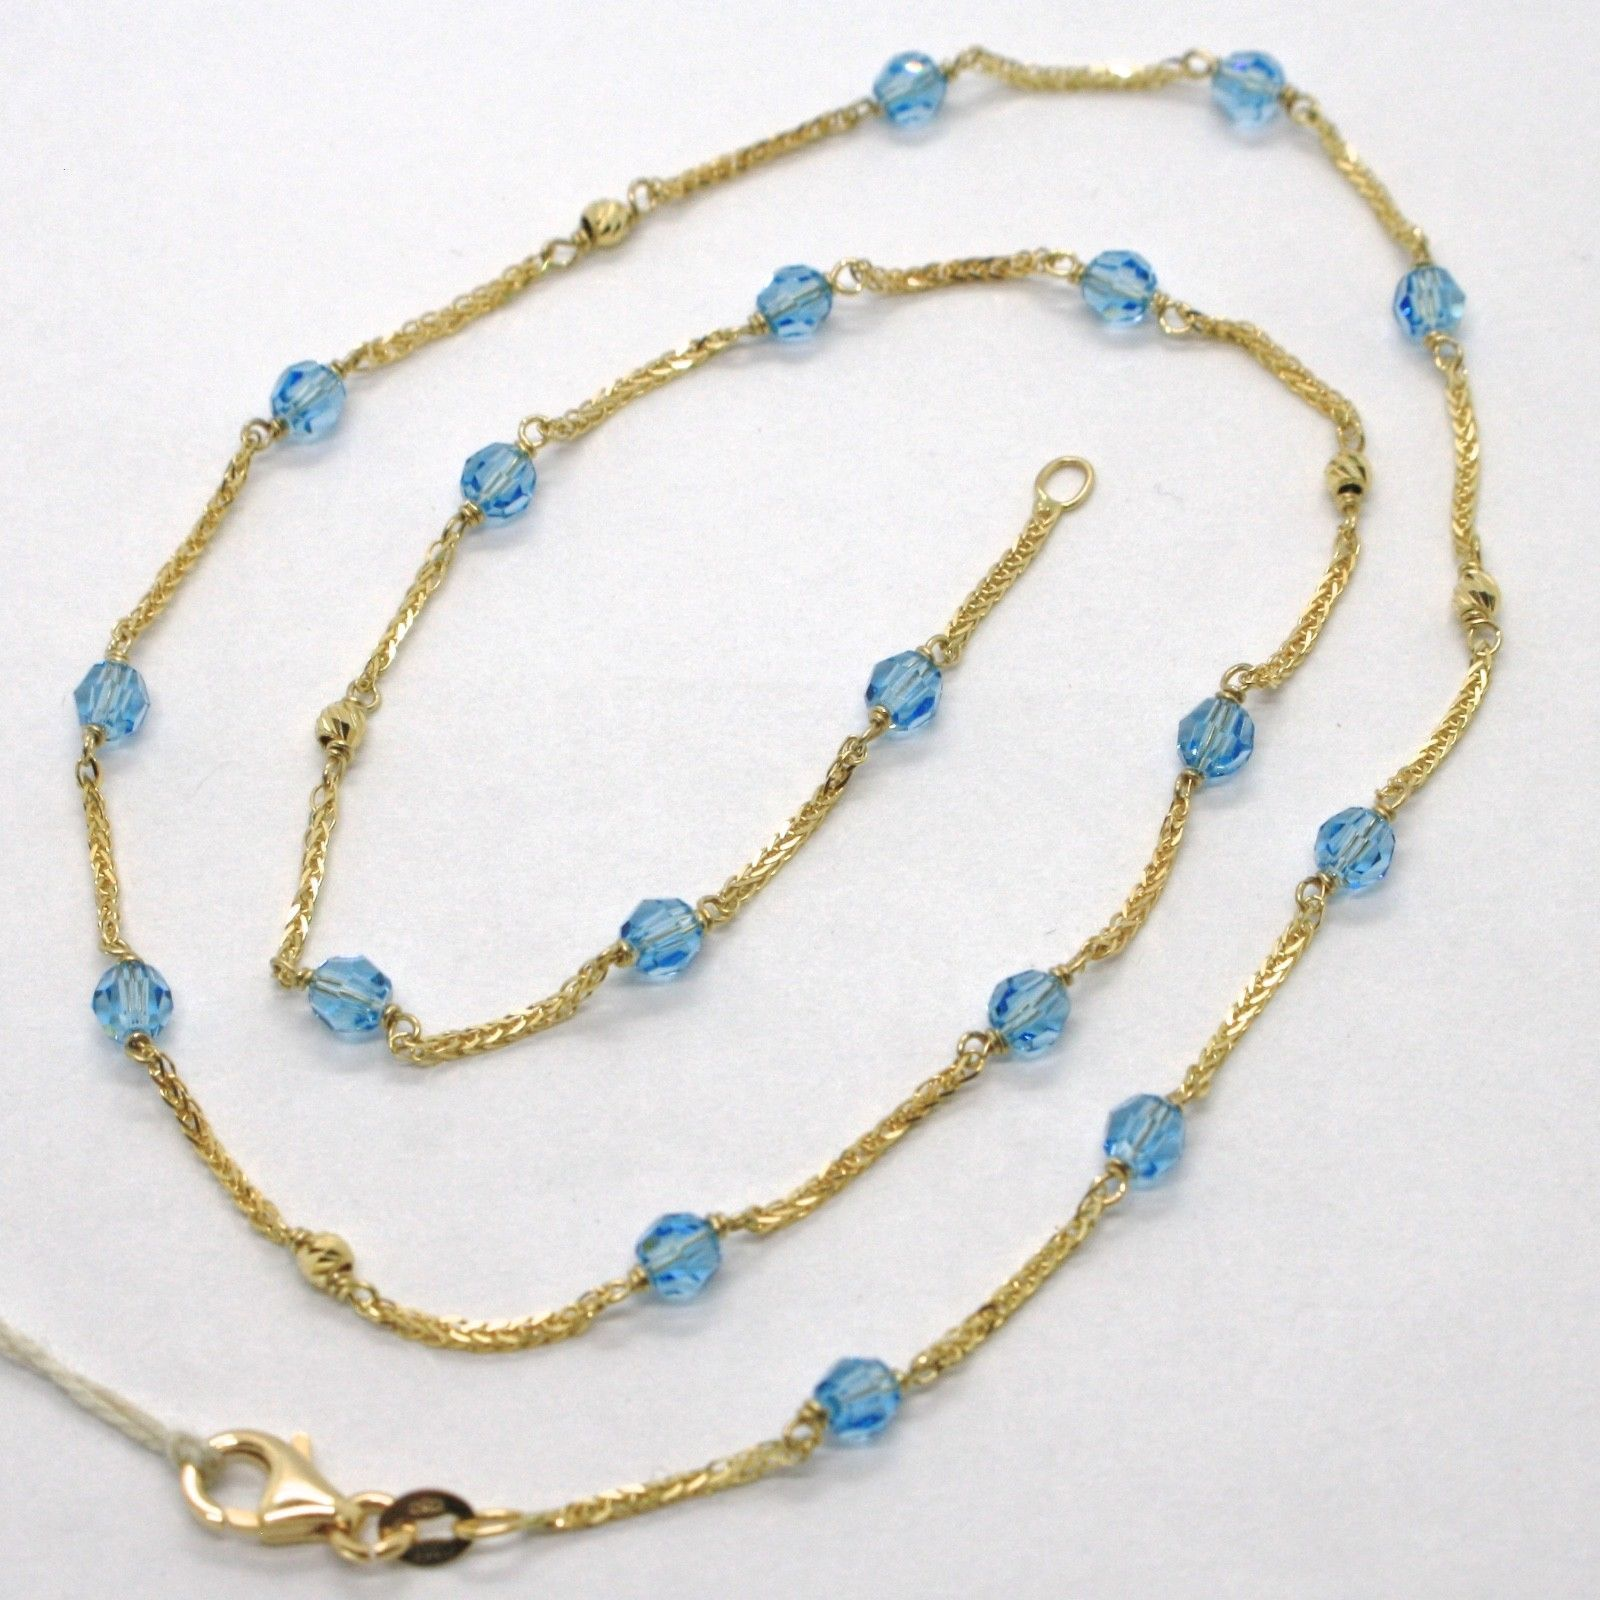 18K YELLOW GOLD NECKLACE EAR SQUARE CHAIN ALTERNATE WITH FACETED BLUE BALLS 4 MM